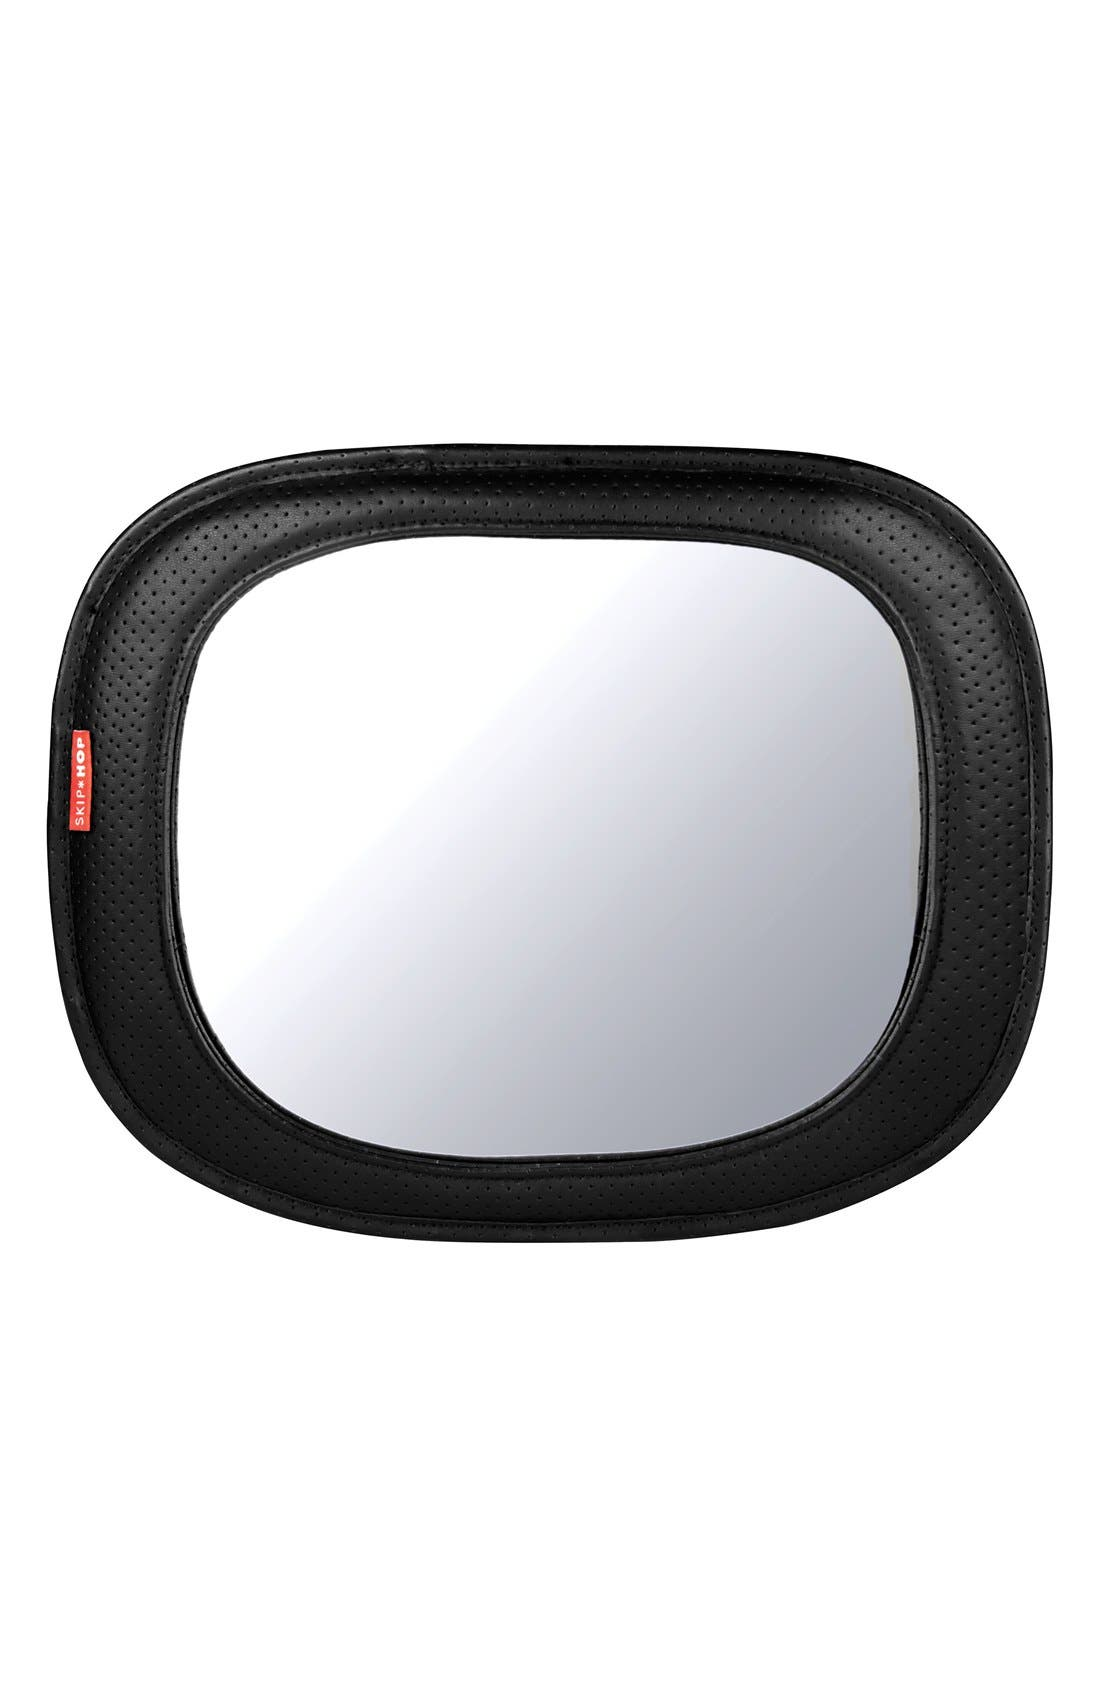 SKIP HOP,                             Backseat Mirror,                             Main thumbnail 1, color,                             001